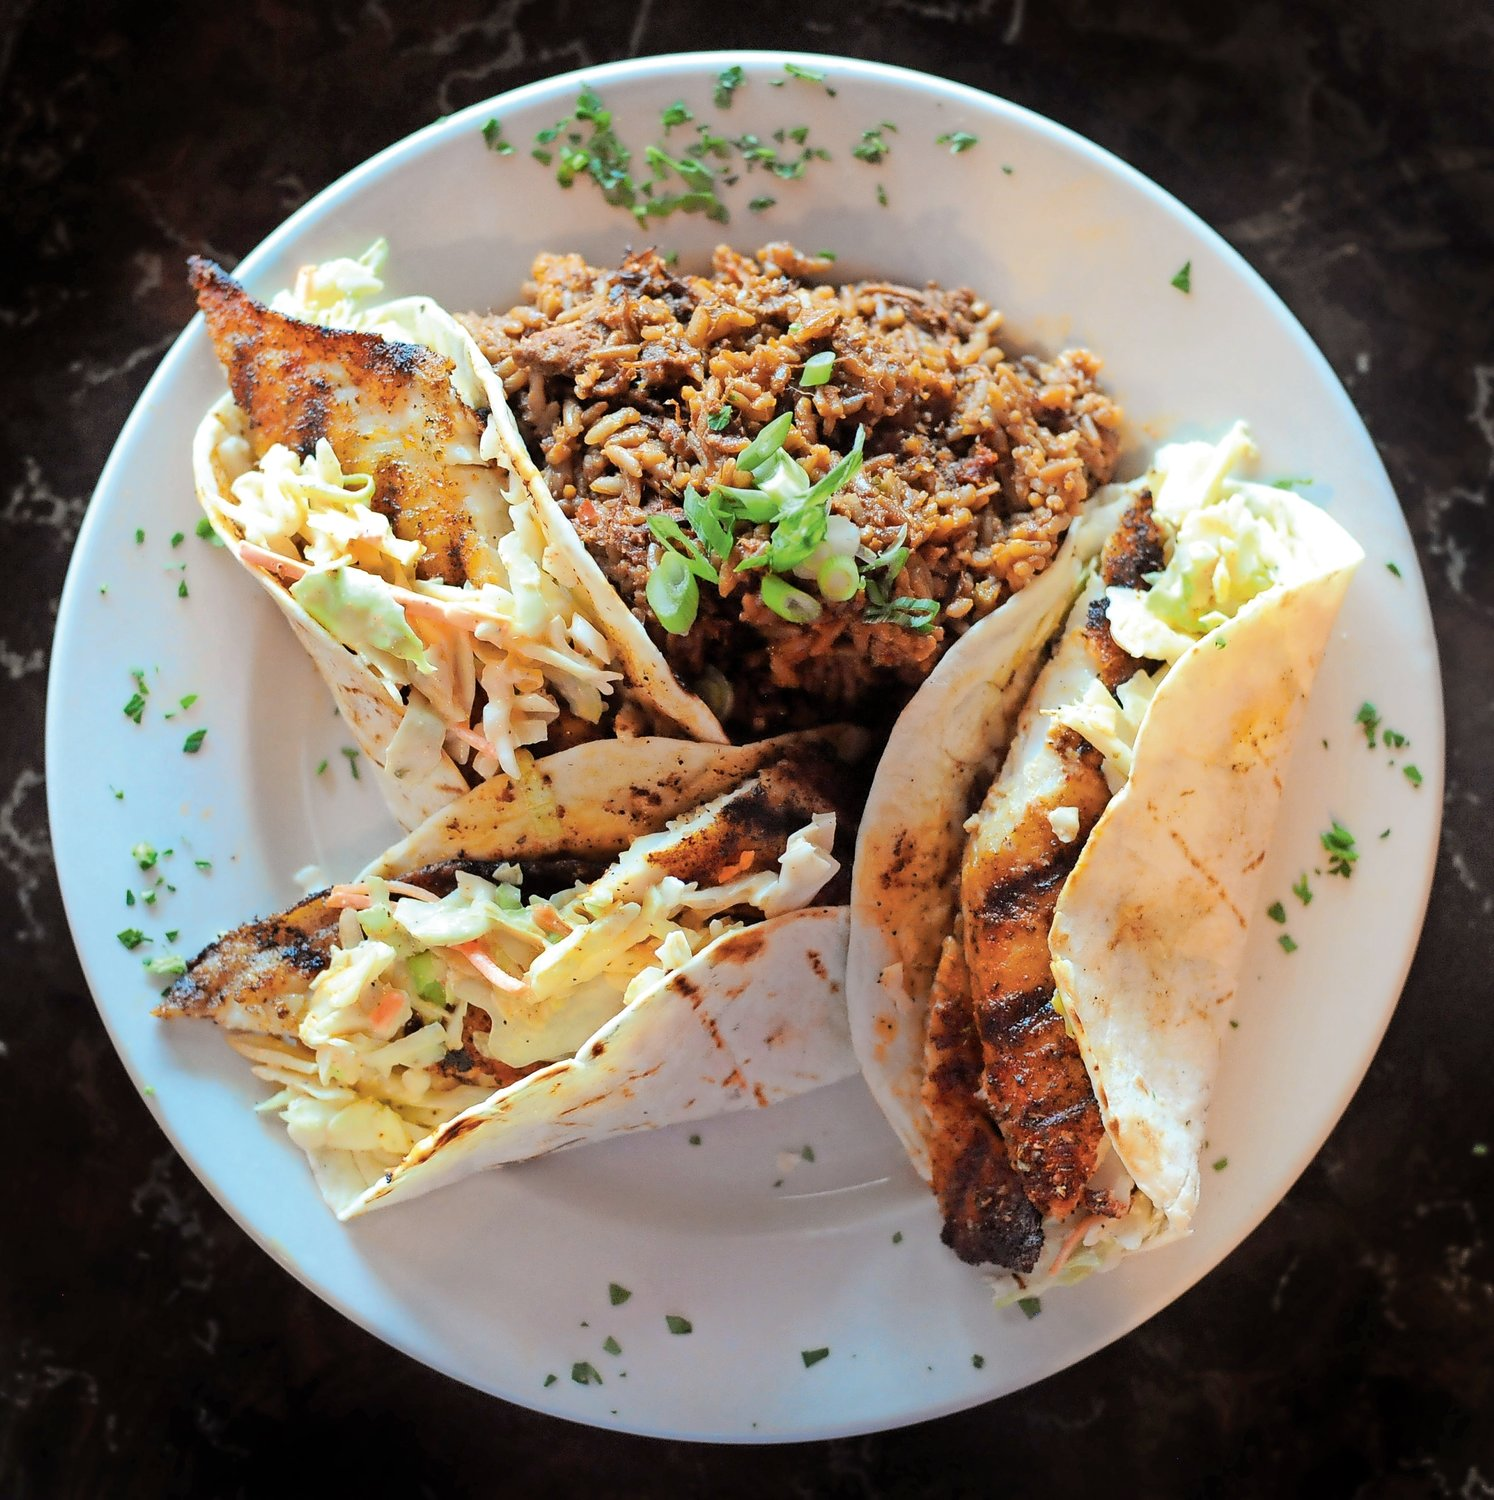 Blackened catfish tacos, served with a side of jambalaya, are a modern twist on a cuisine favorite.